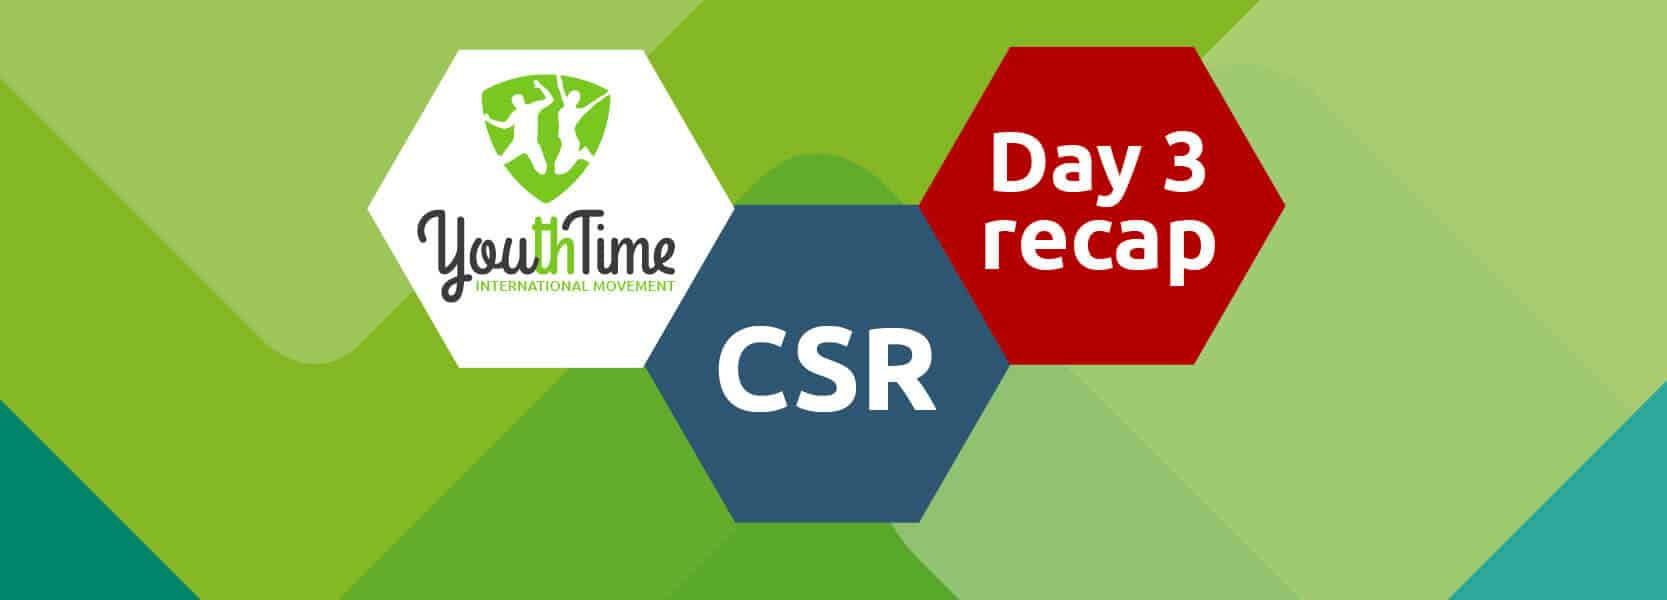 2021 CSR D3R Is Corporate Responsibility Key to Sustainability